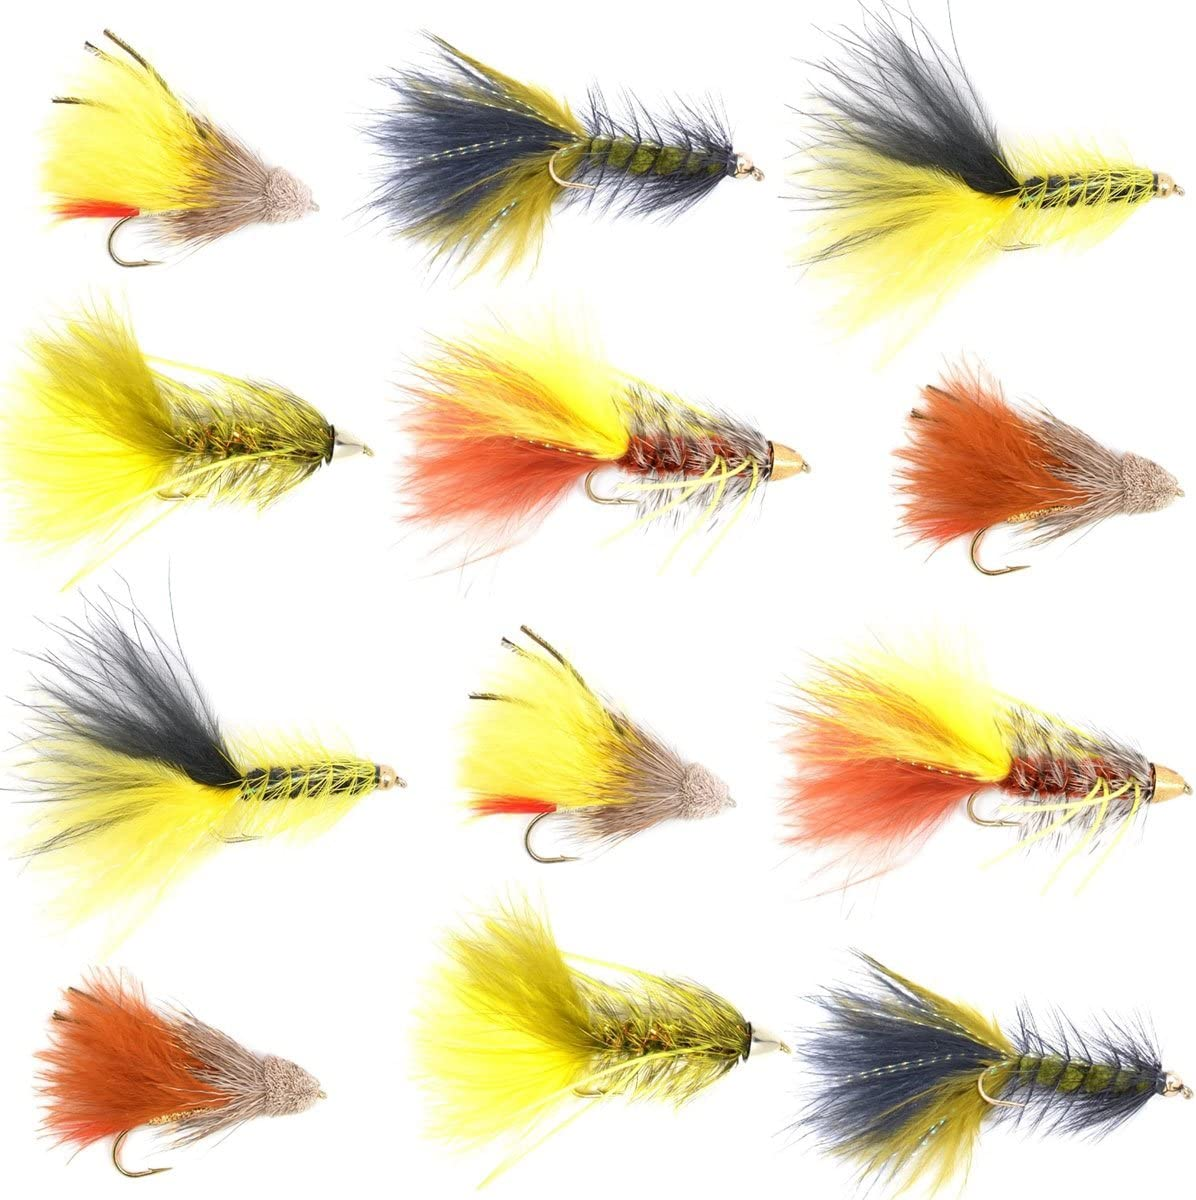 The Fly Fishing Place Trout Boston Mall and R Limited price Assortment - Bass Streamer